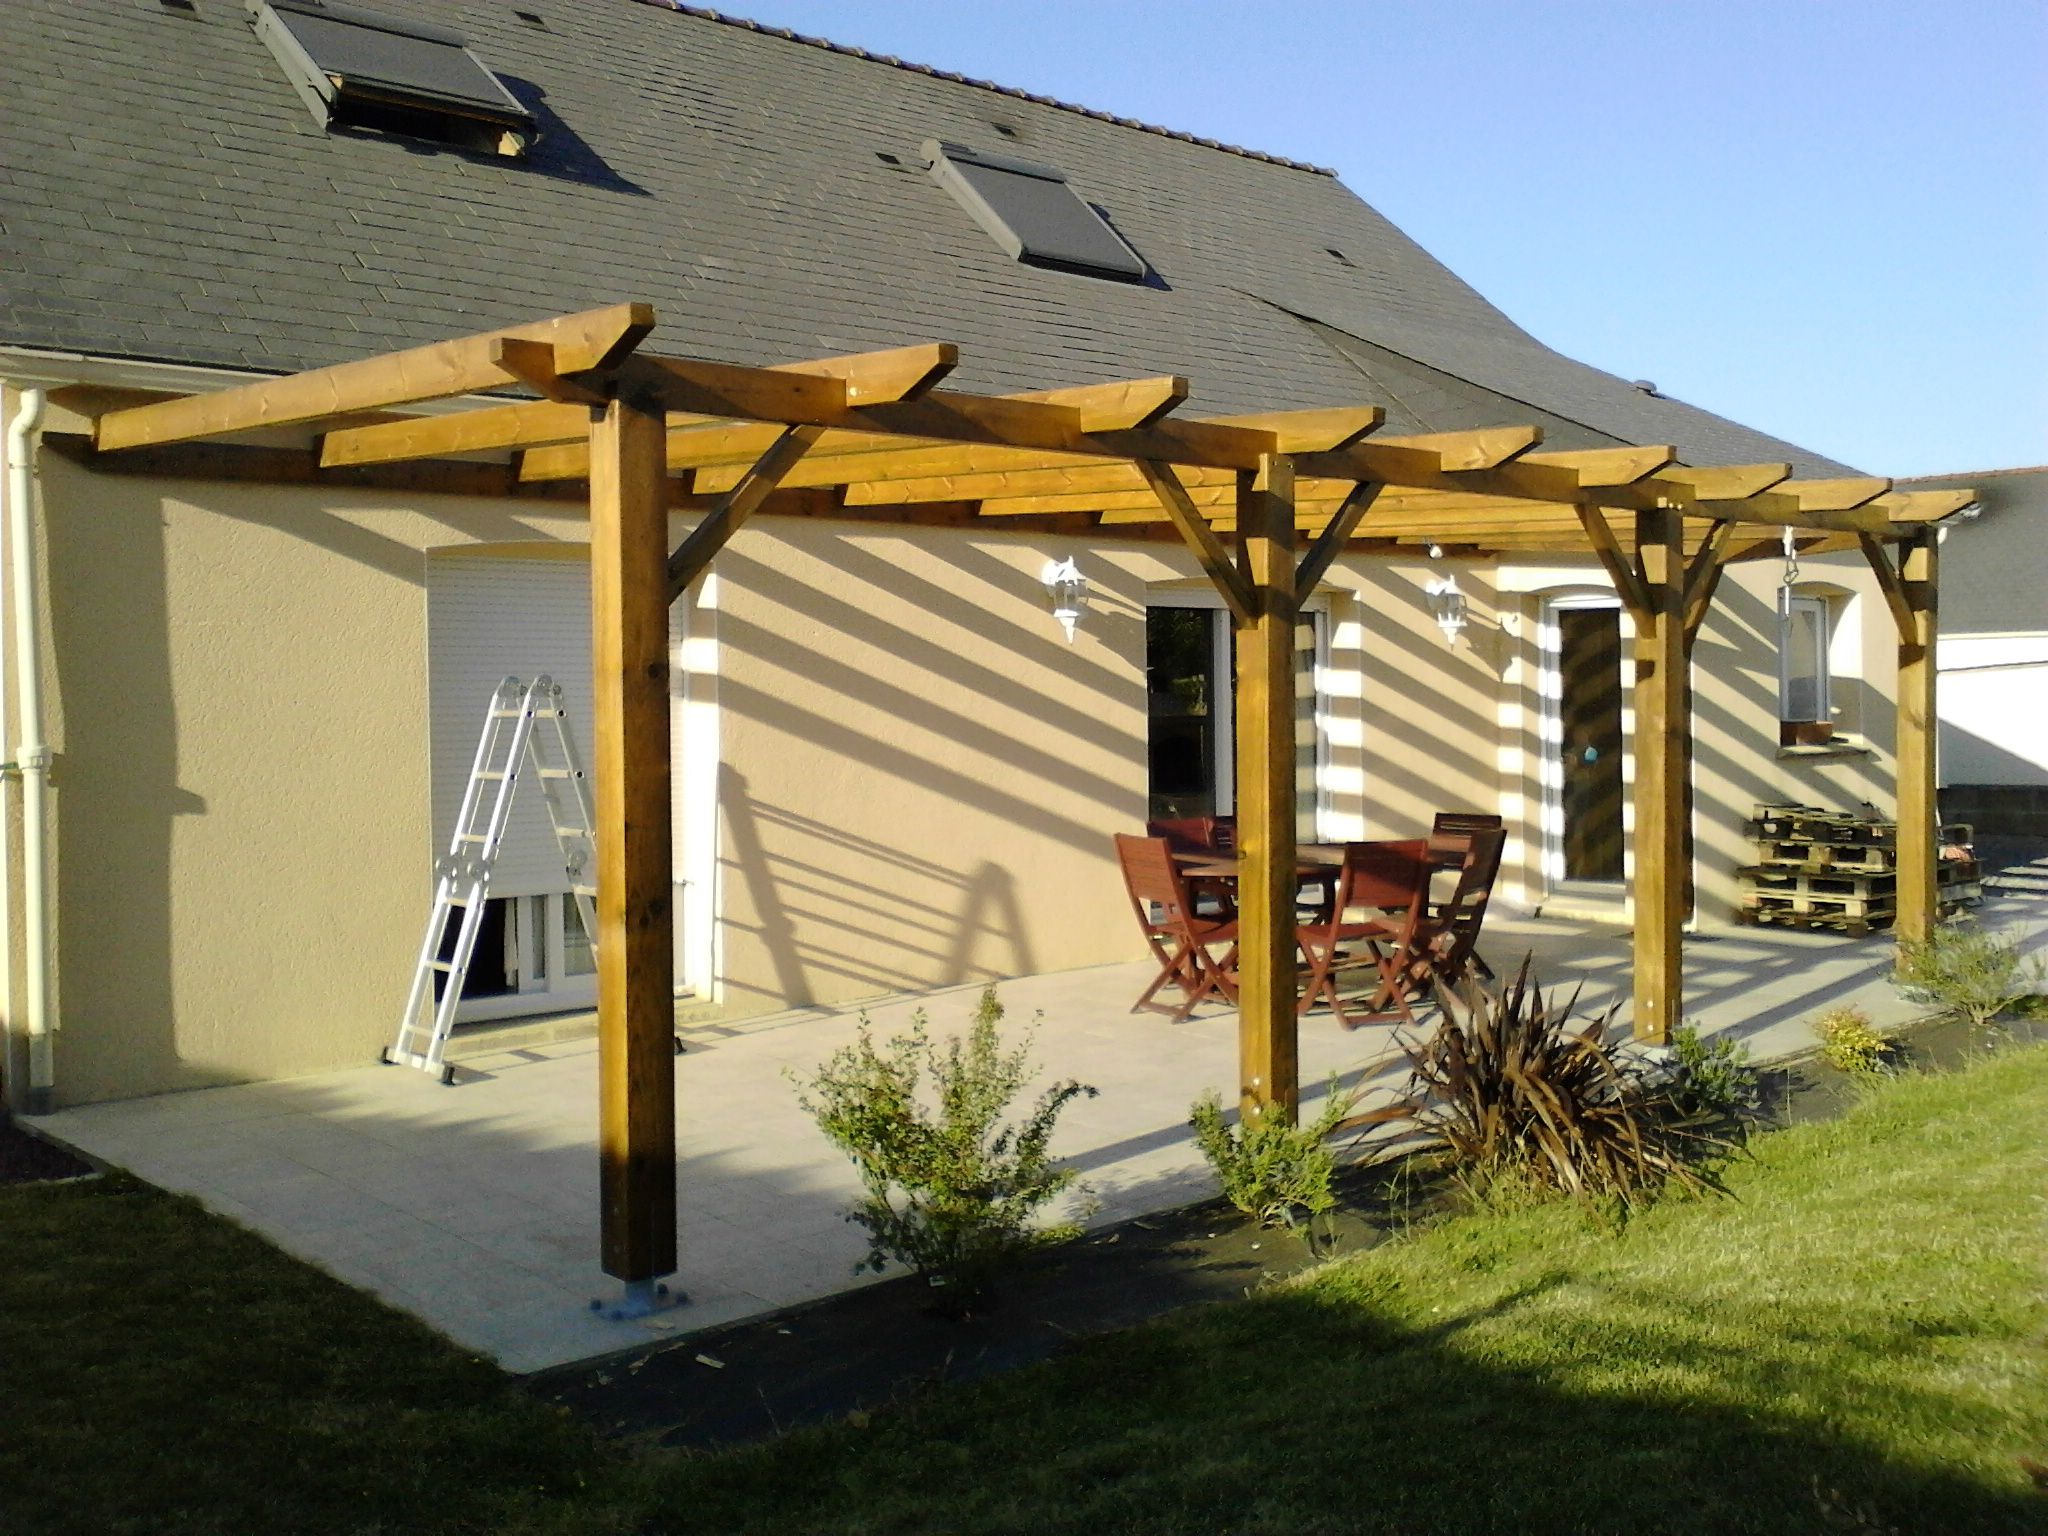 Toit Pergola Construction D Une Pergola En Bois Instructions De Garden